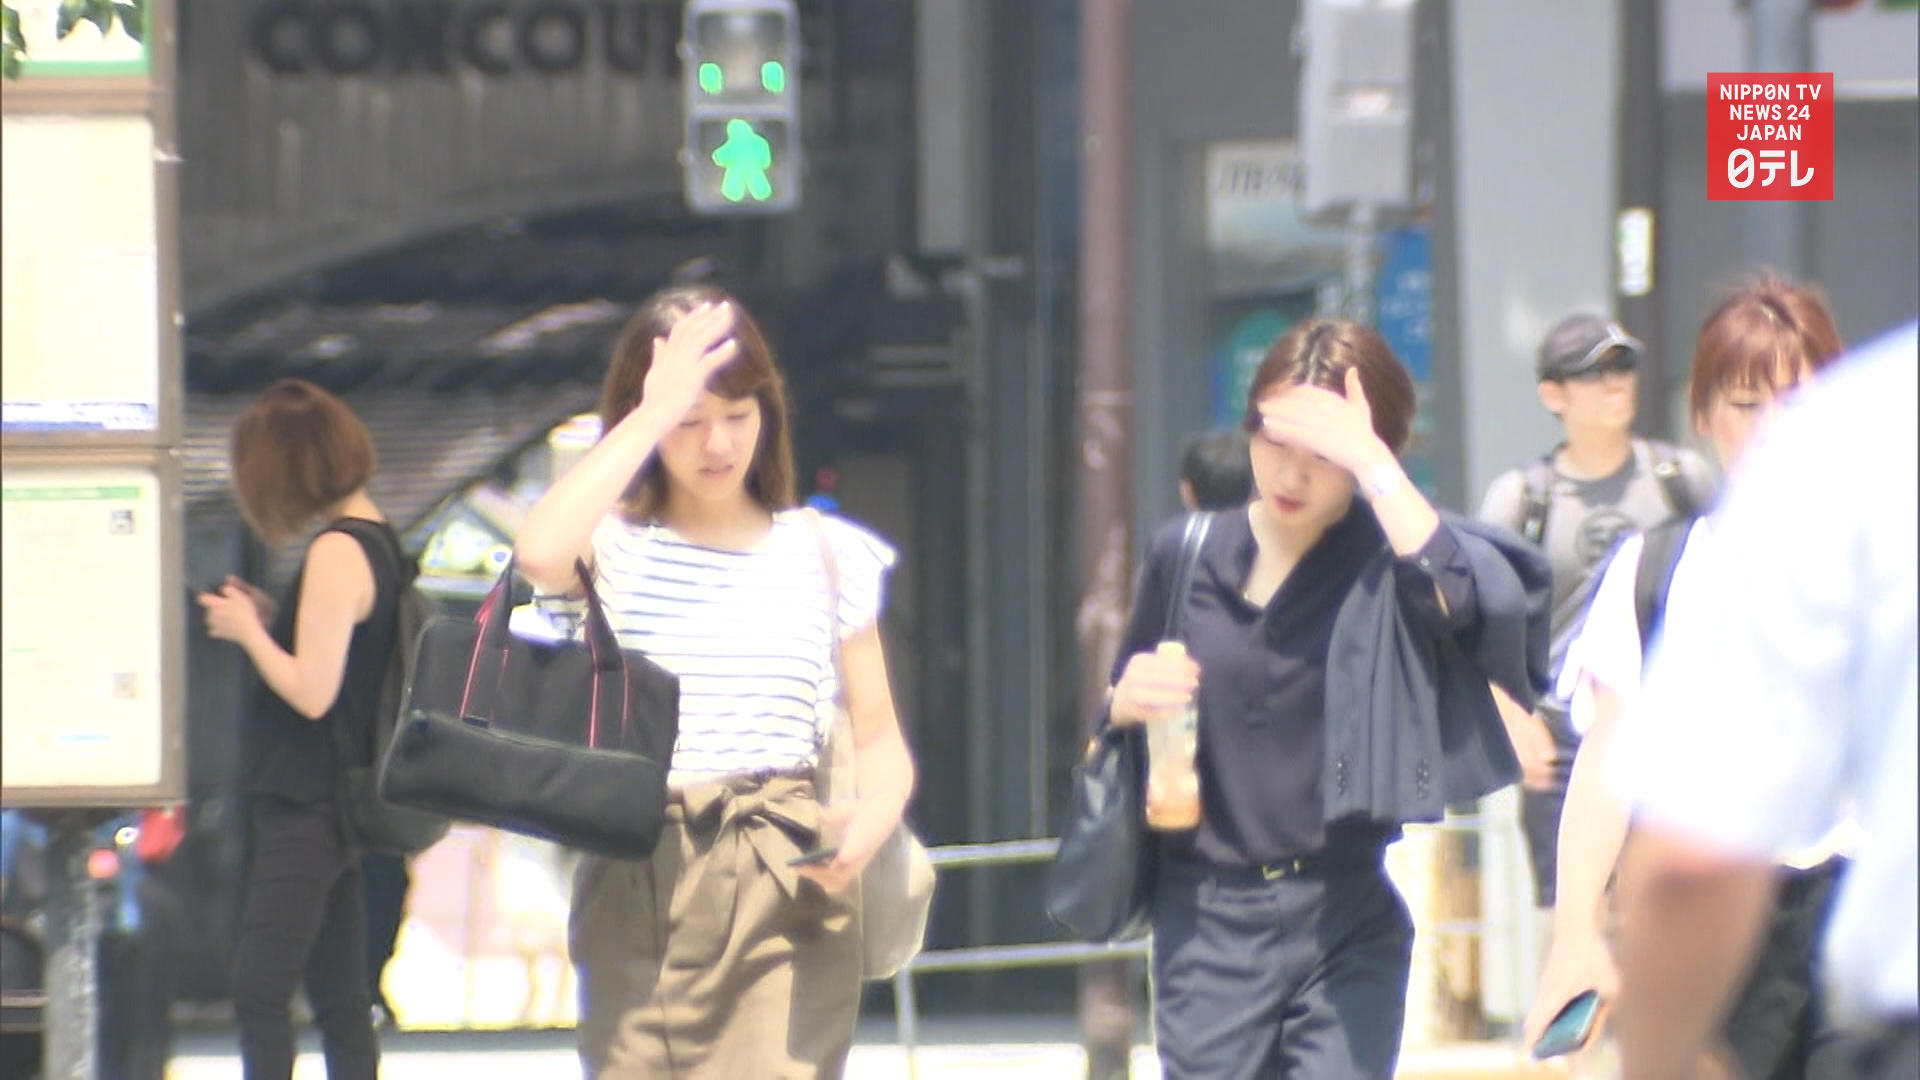 Japan set to record highest yearly average temperature due to global warming